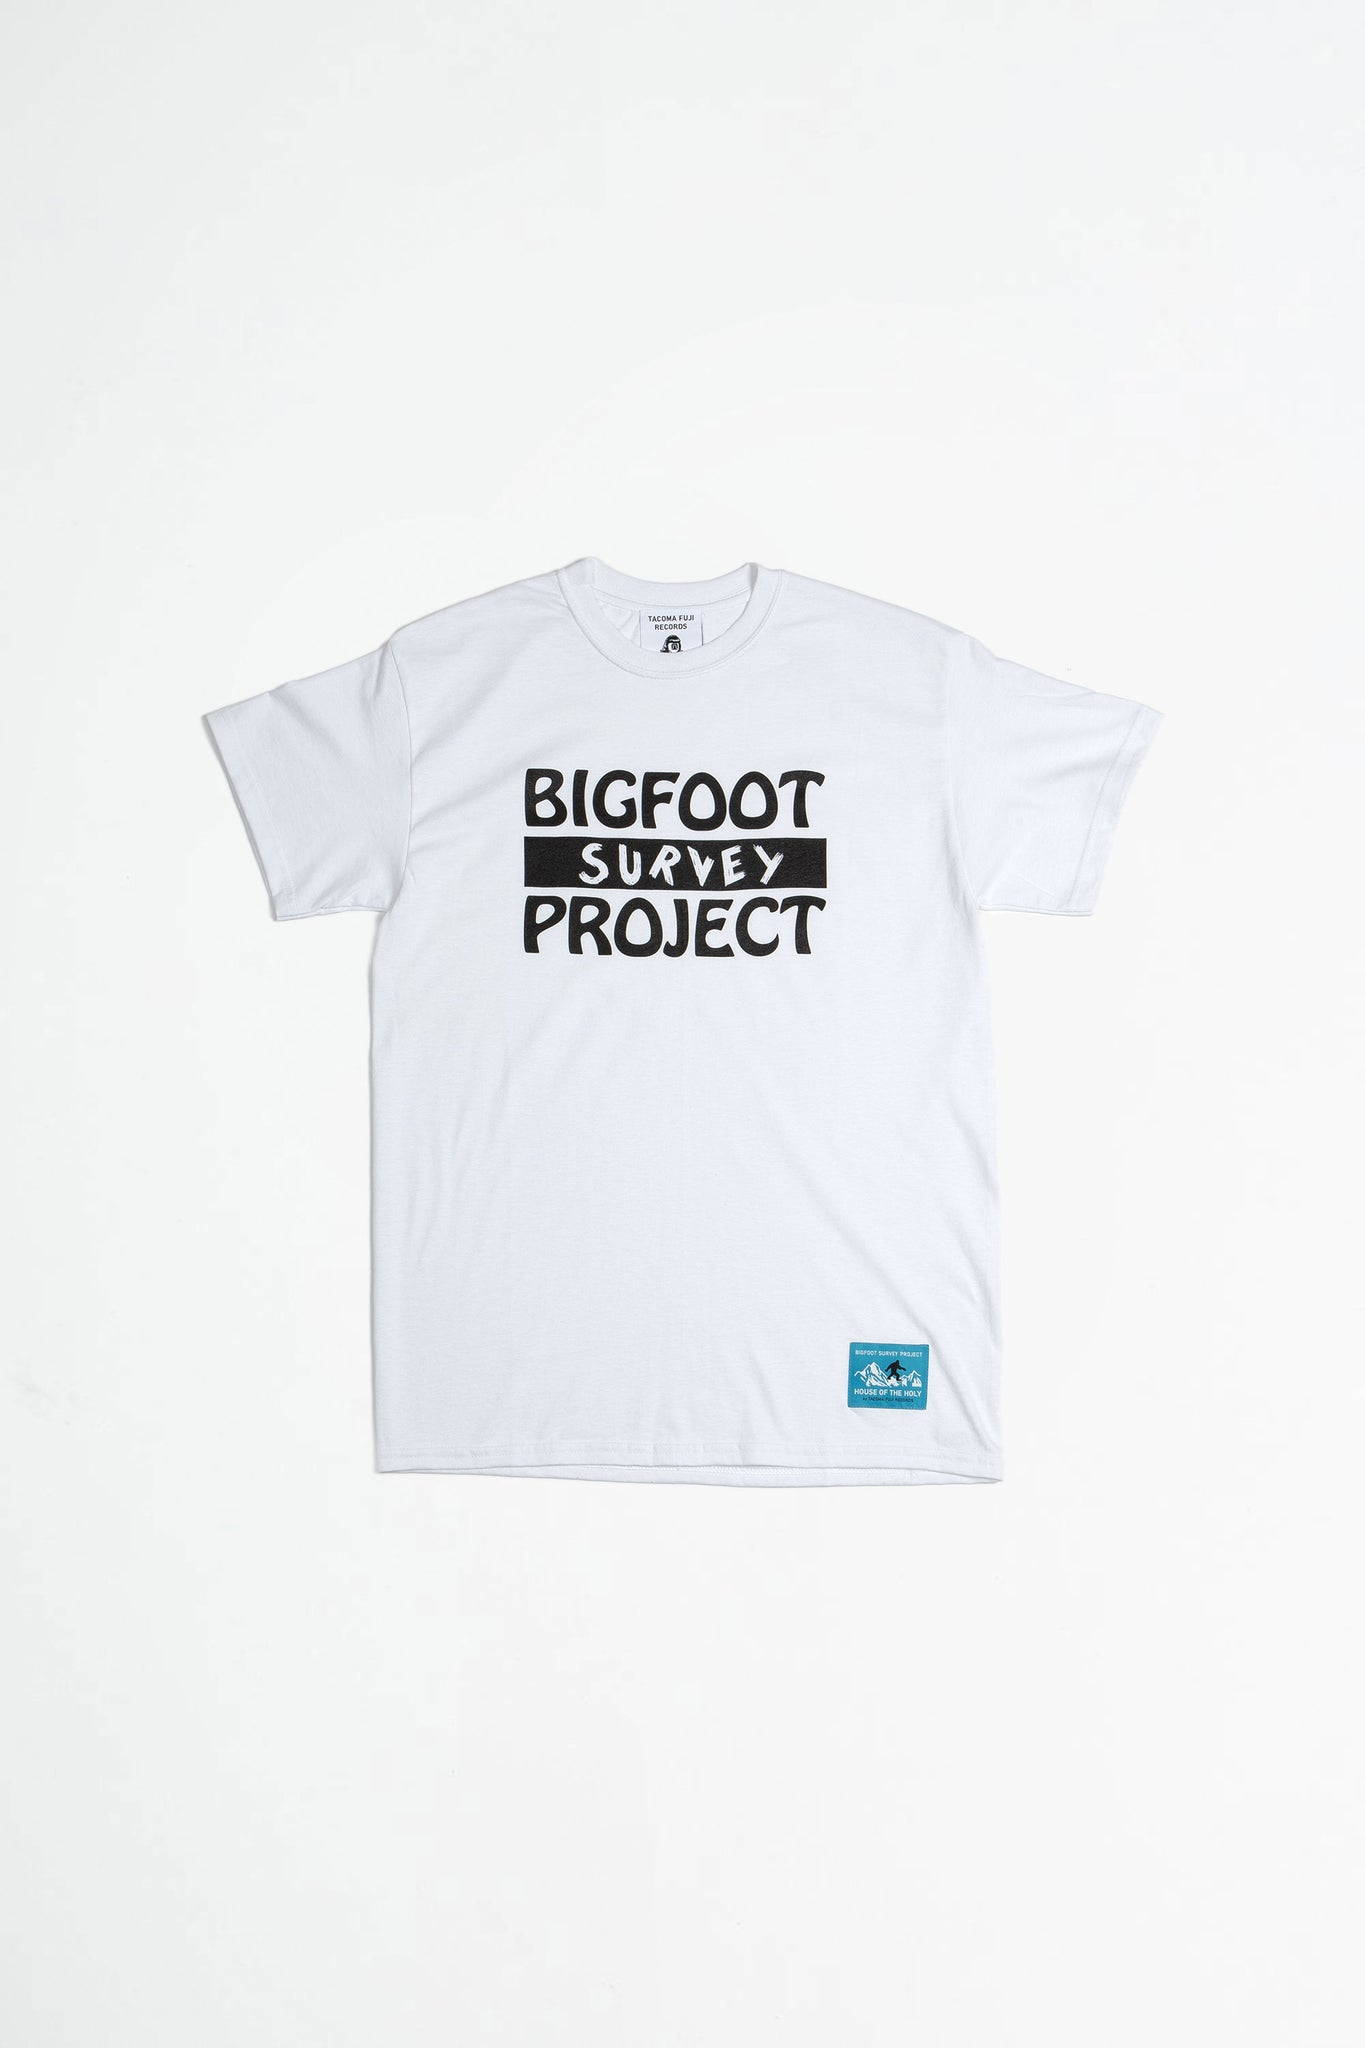 Bigfoot survey project t-shirt white